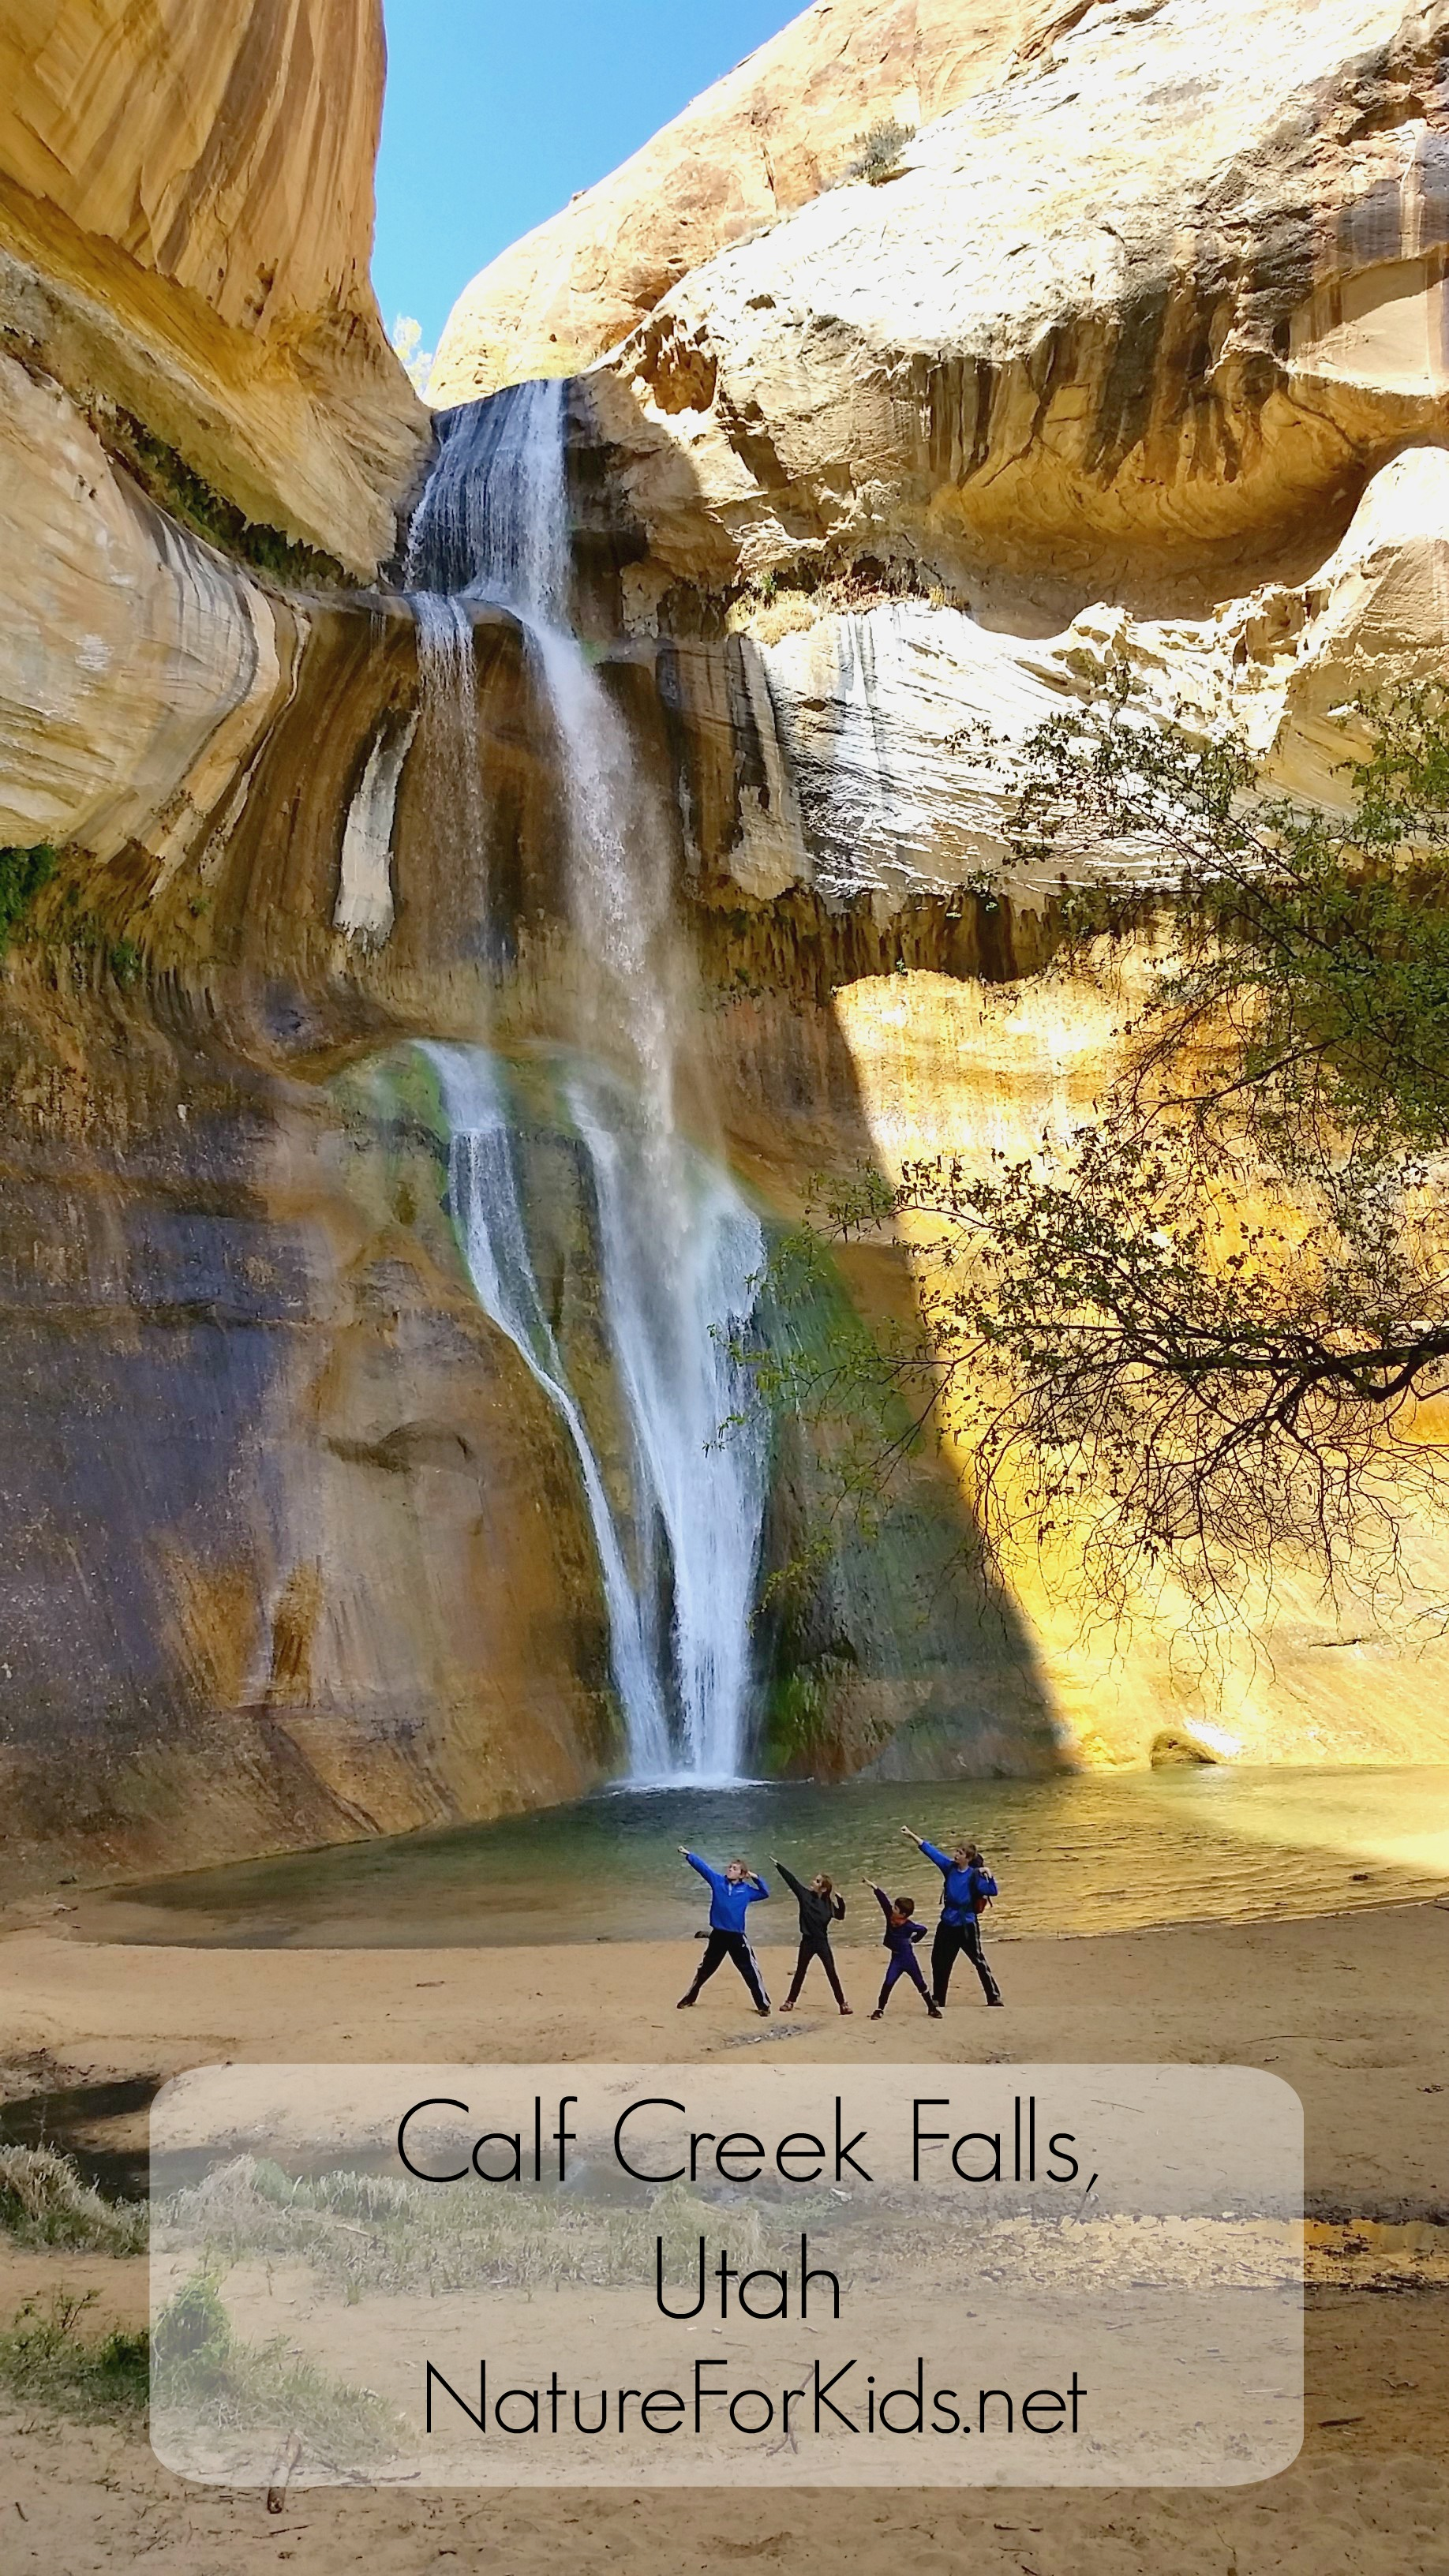 Destination Calf Creek Falls, Utah